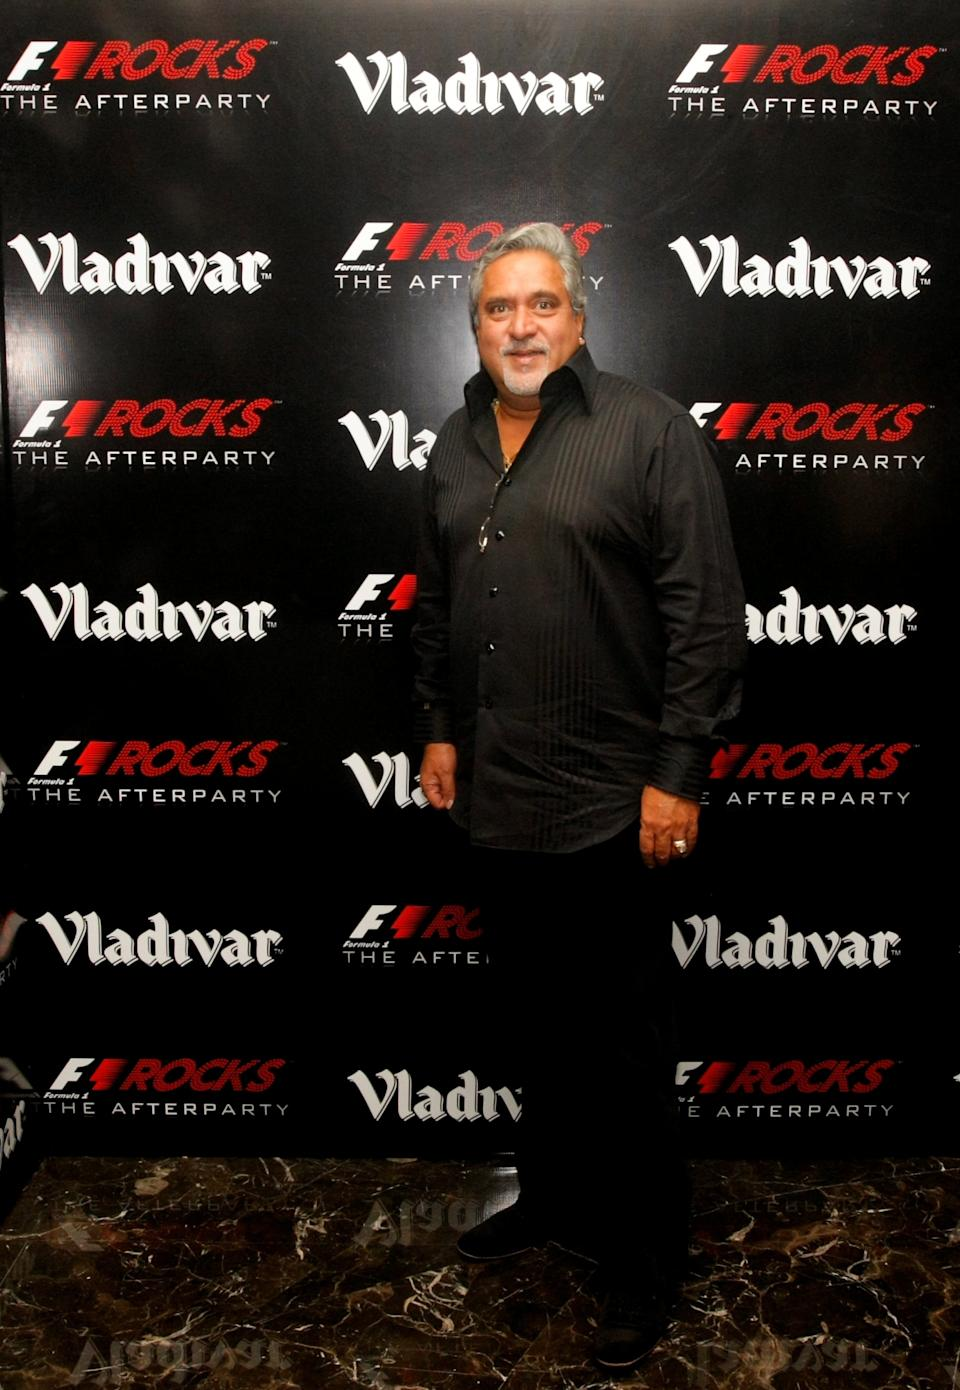 DELHI, INDIA - OCTOBER 30: Vijay Mallya at the F1 Rocks India Afterparty on October 30, 2011 in Delhi, India. (Photo by Andrew Caballero-Reynolds/Getty Images for F1 Rocks in India with Vladivar)